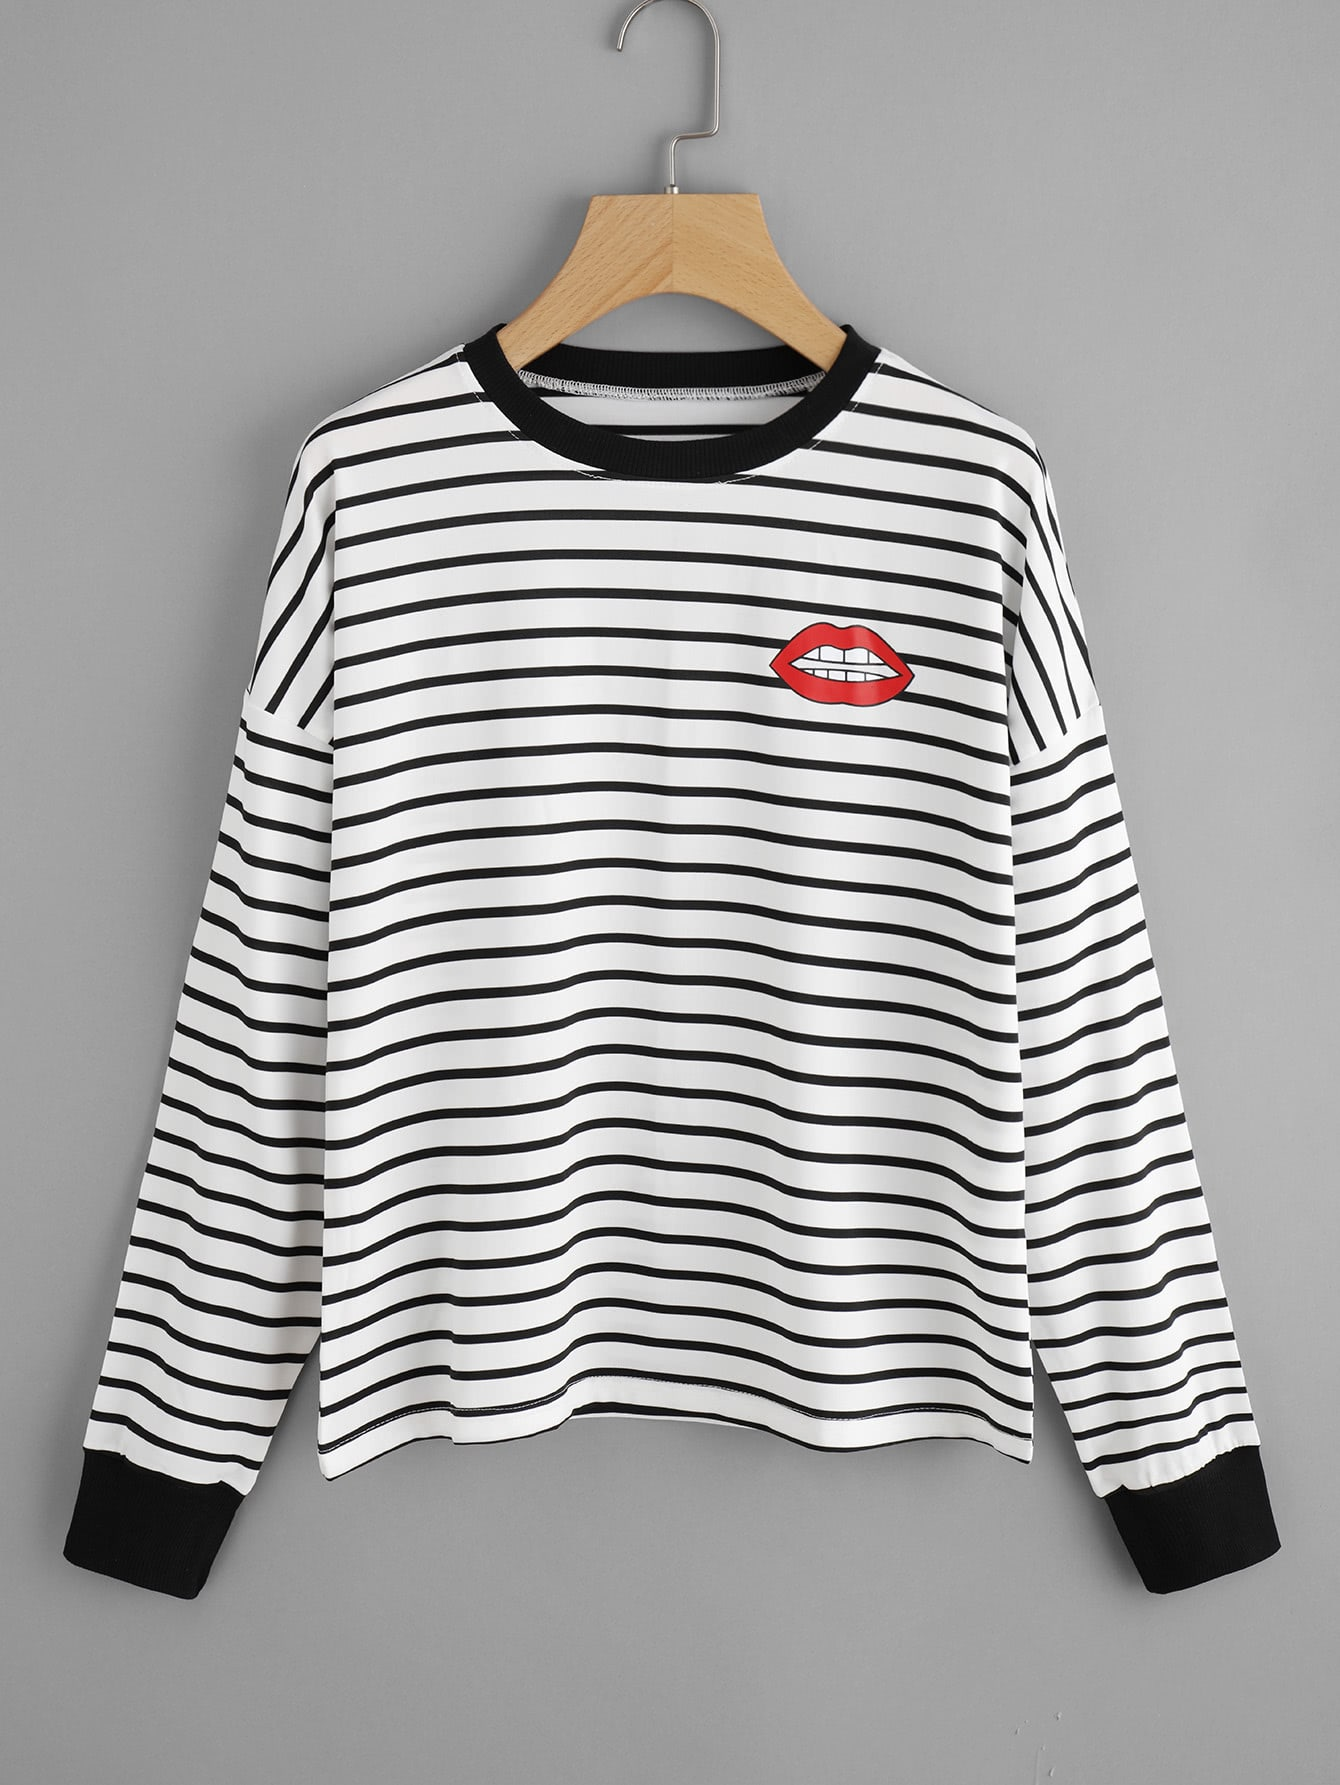 Lips Print Striped Sweatshirt sweatsh170928025